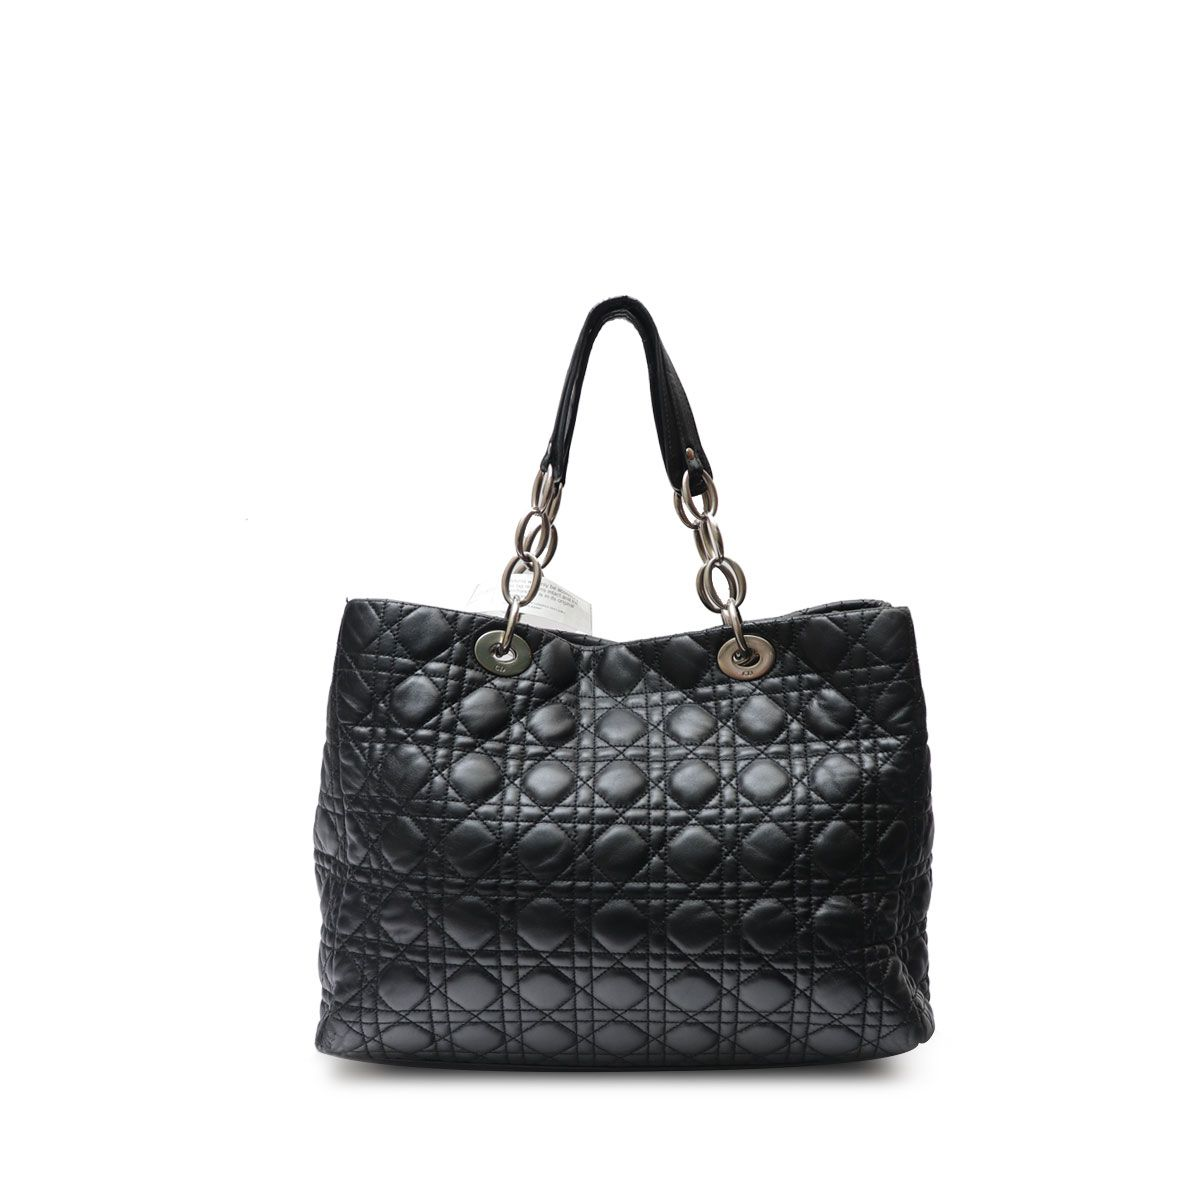 75becaeac4 LADY DIOR BLACK CANNAGE SHOPPER TOTE